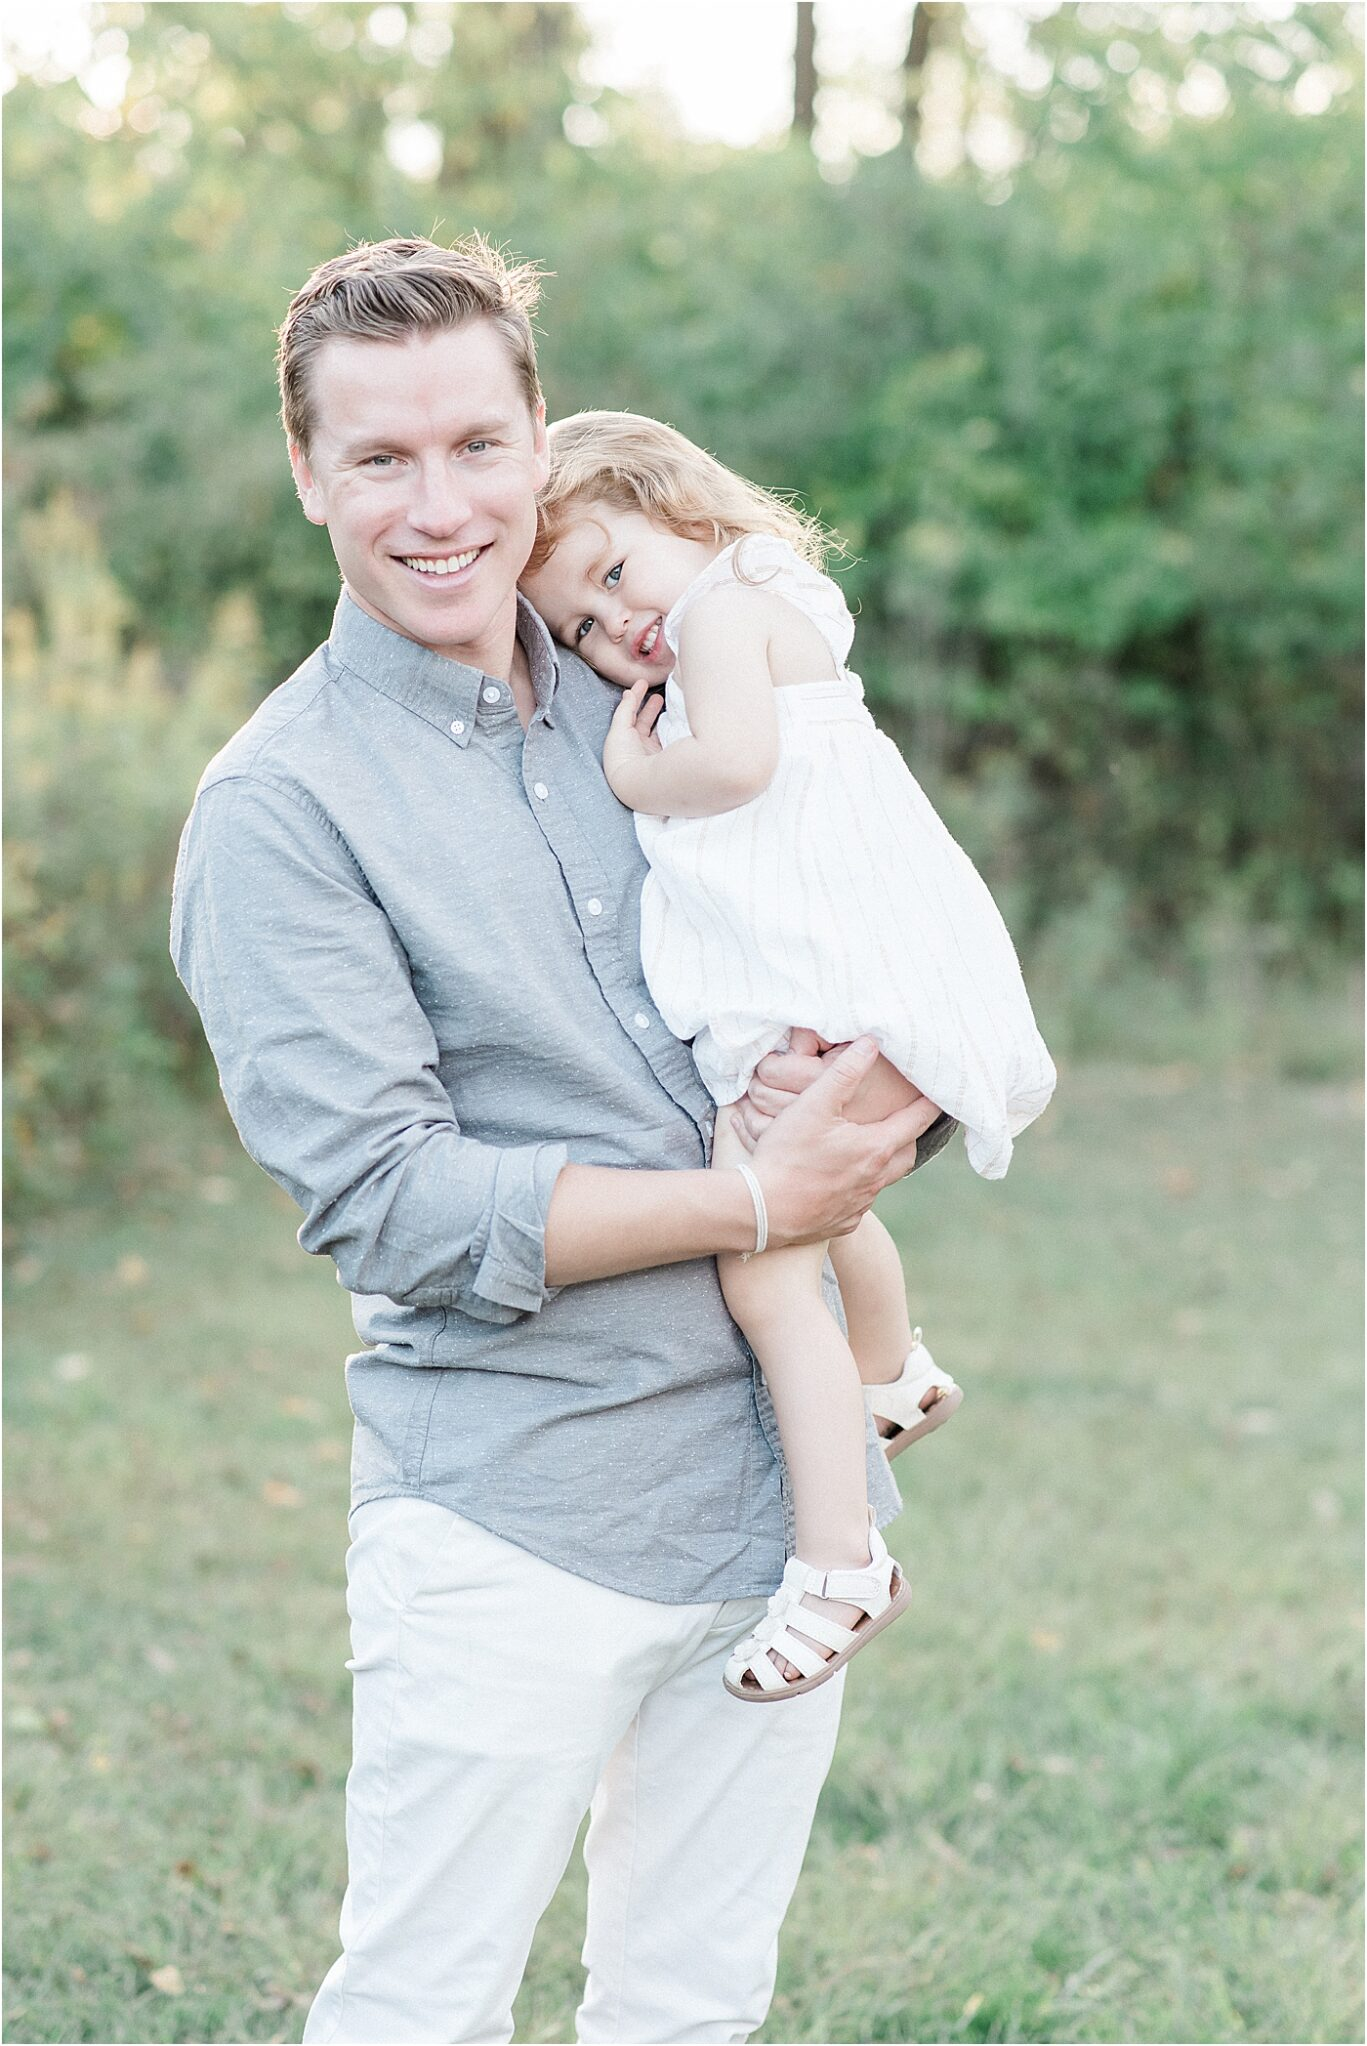 Dad holding his daughter. Photo by Lindsay Konopa Photography.